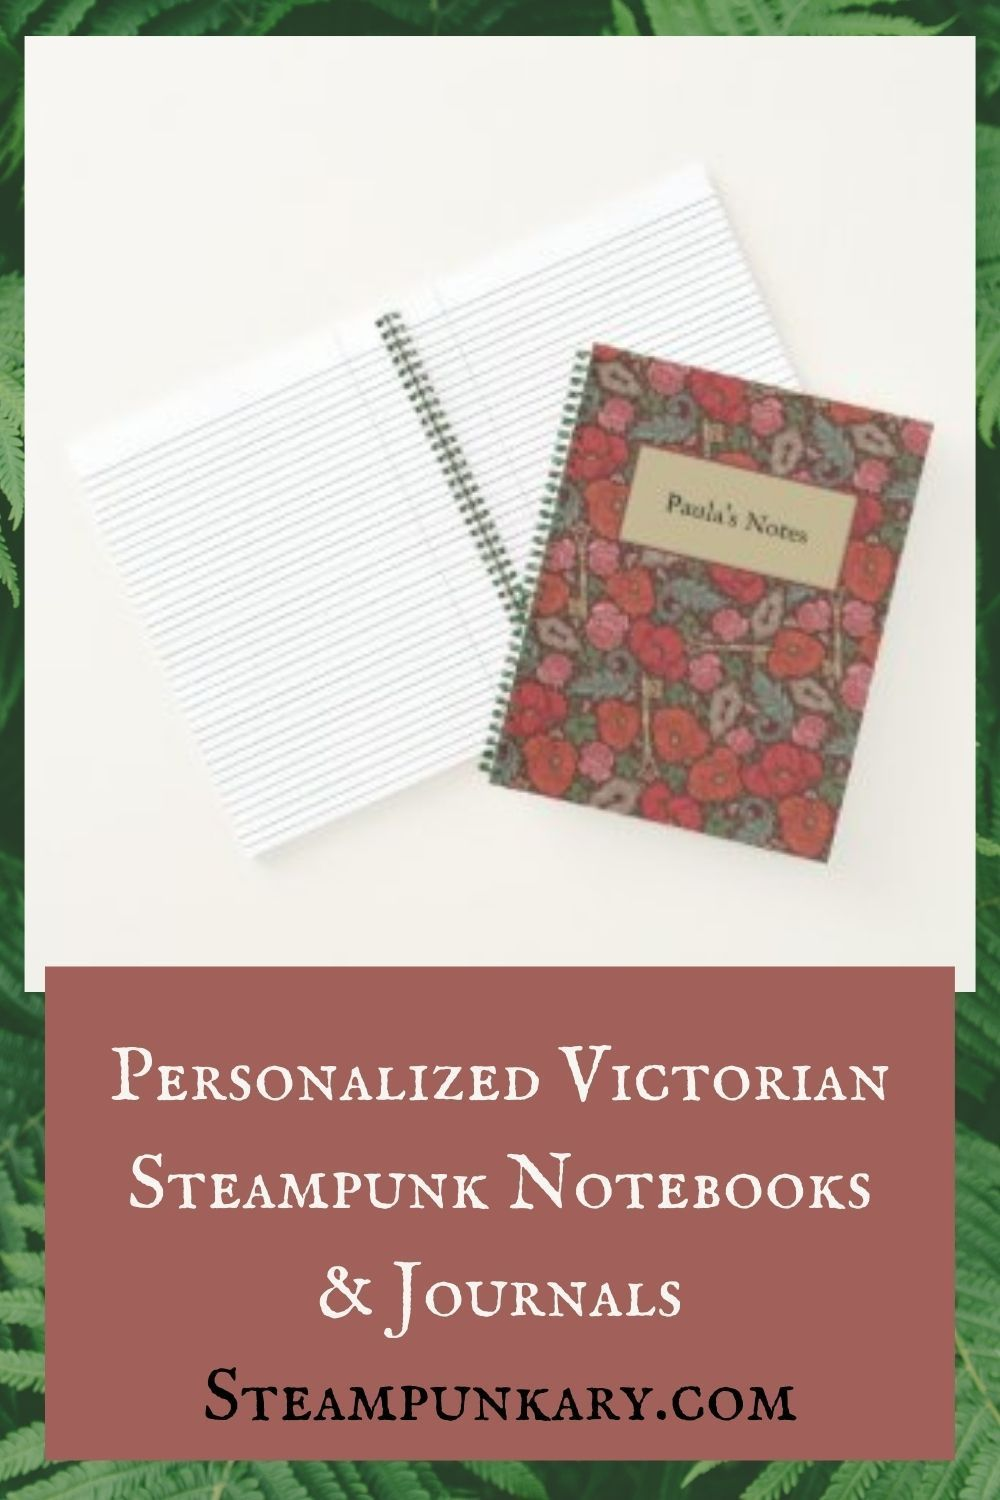 Victorian Steampunk Christmas 2020 Photos Personalized Victorian Steampunk Notebooks & Journals